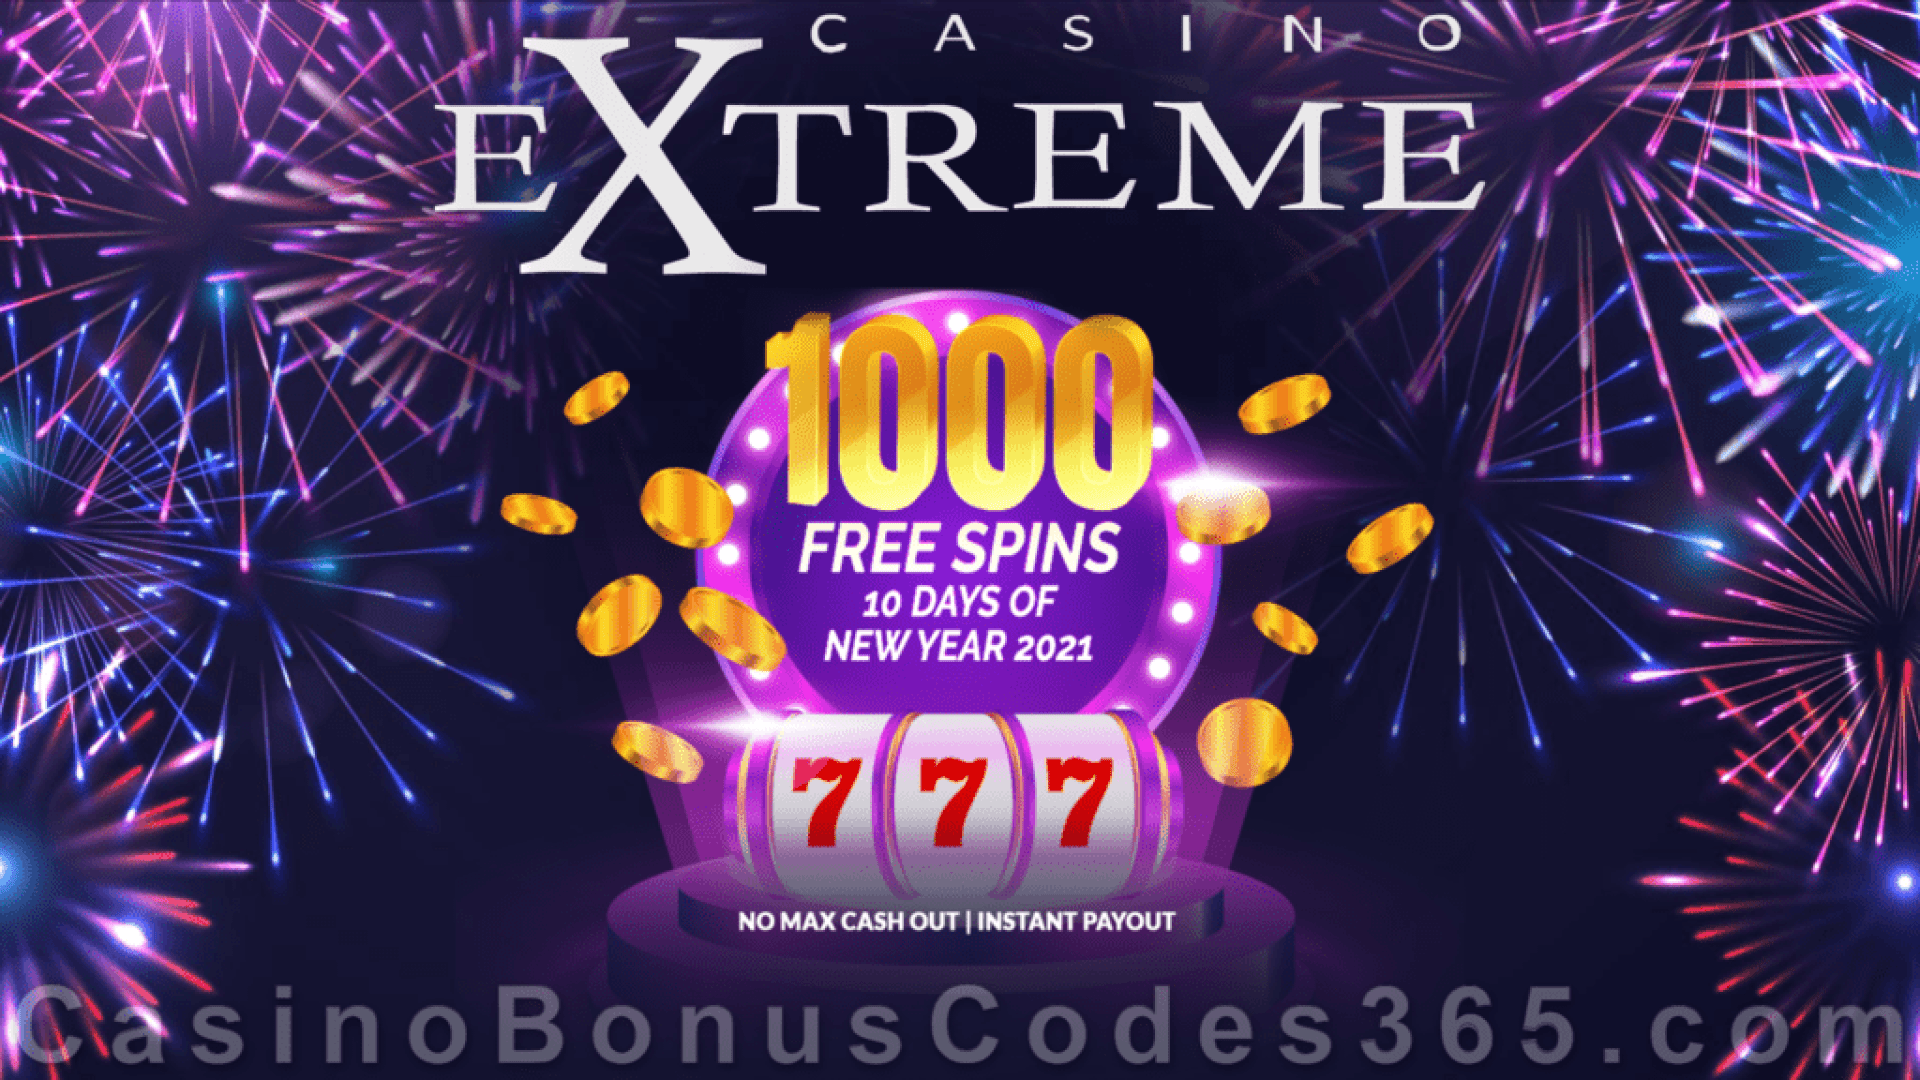 Casino Extreme 1000 FREE Spins 10 Days of New Year 2021 Spectacular Deal